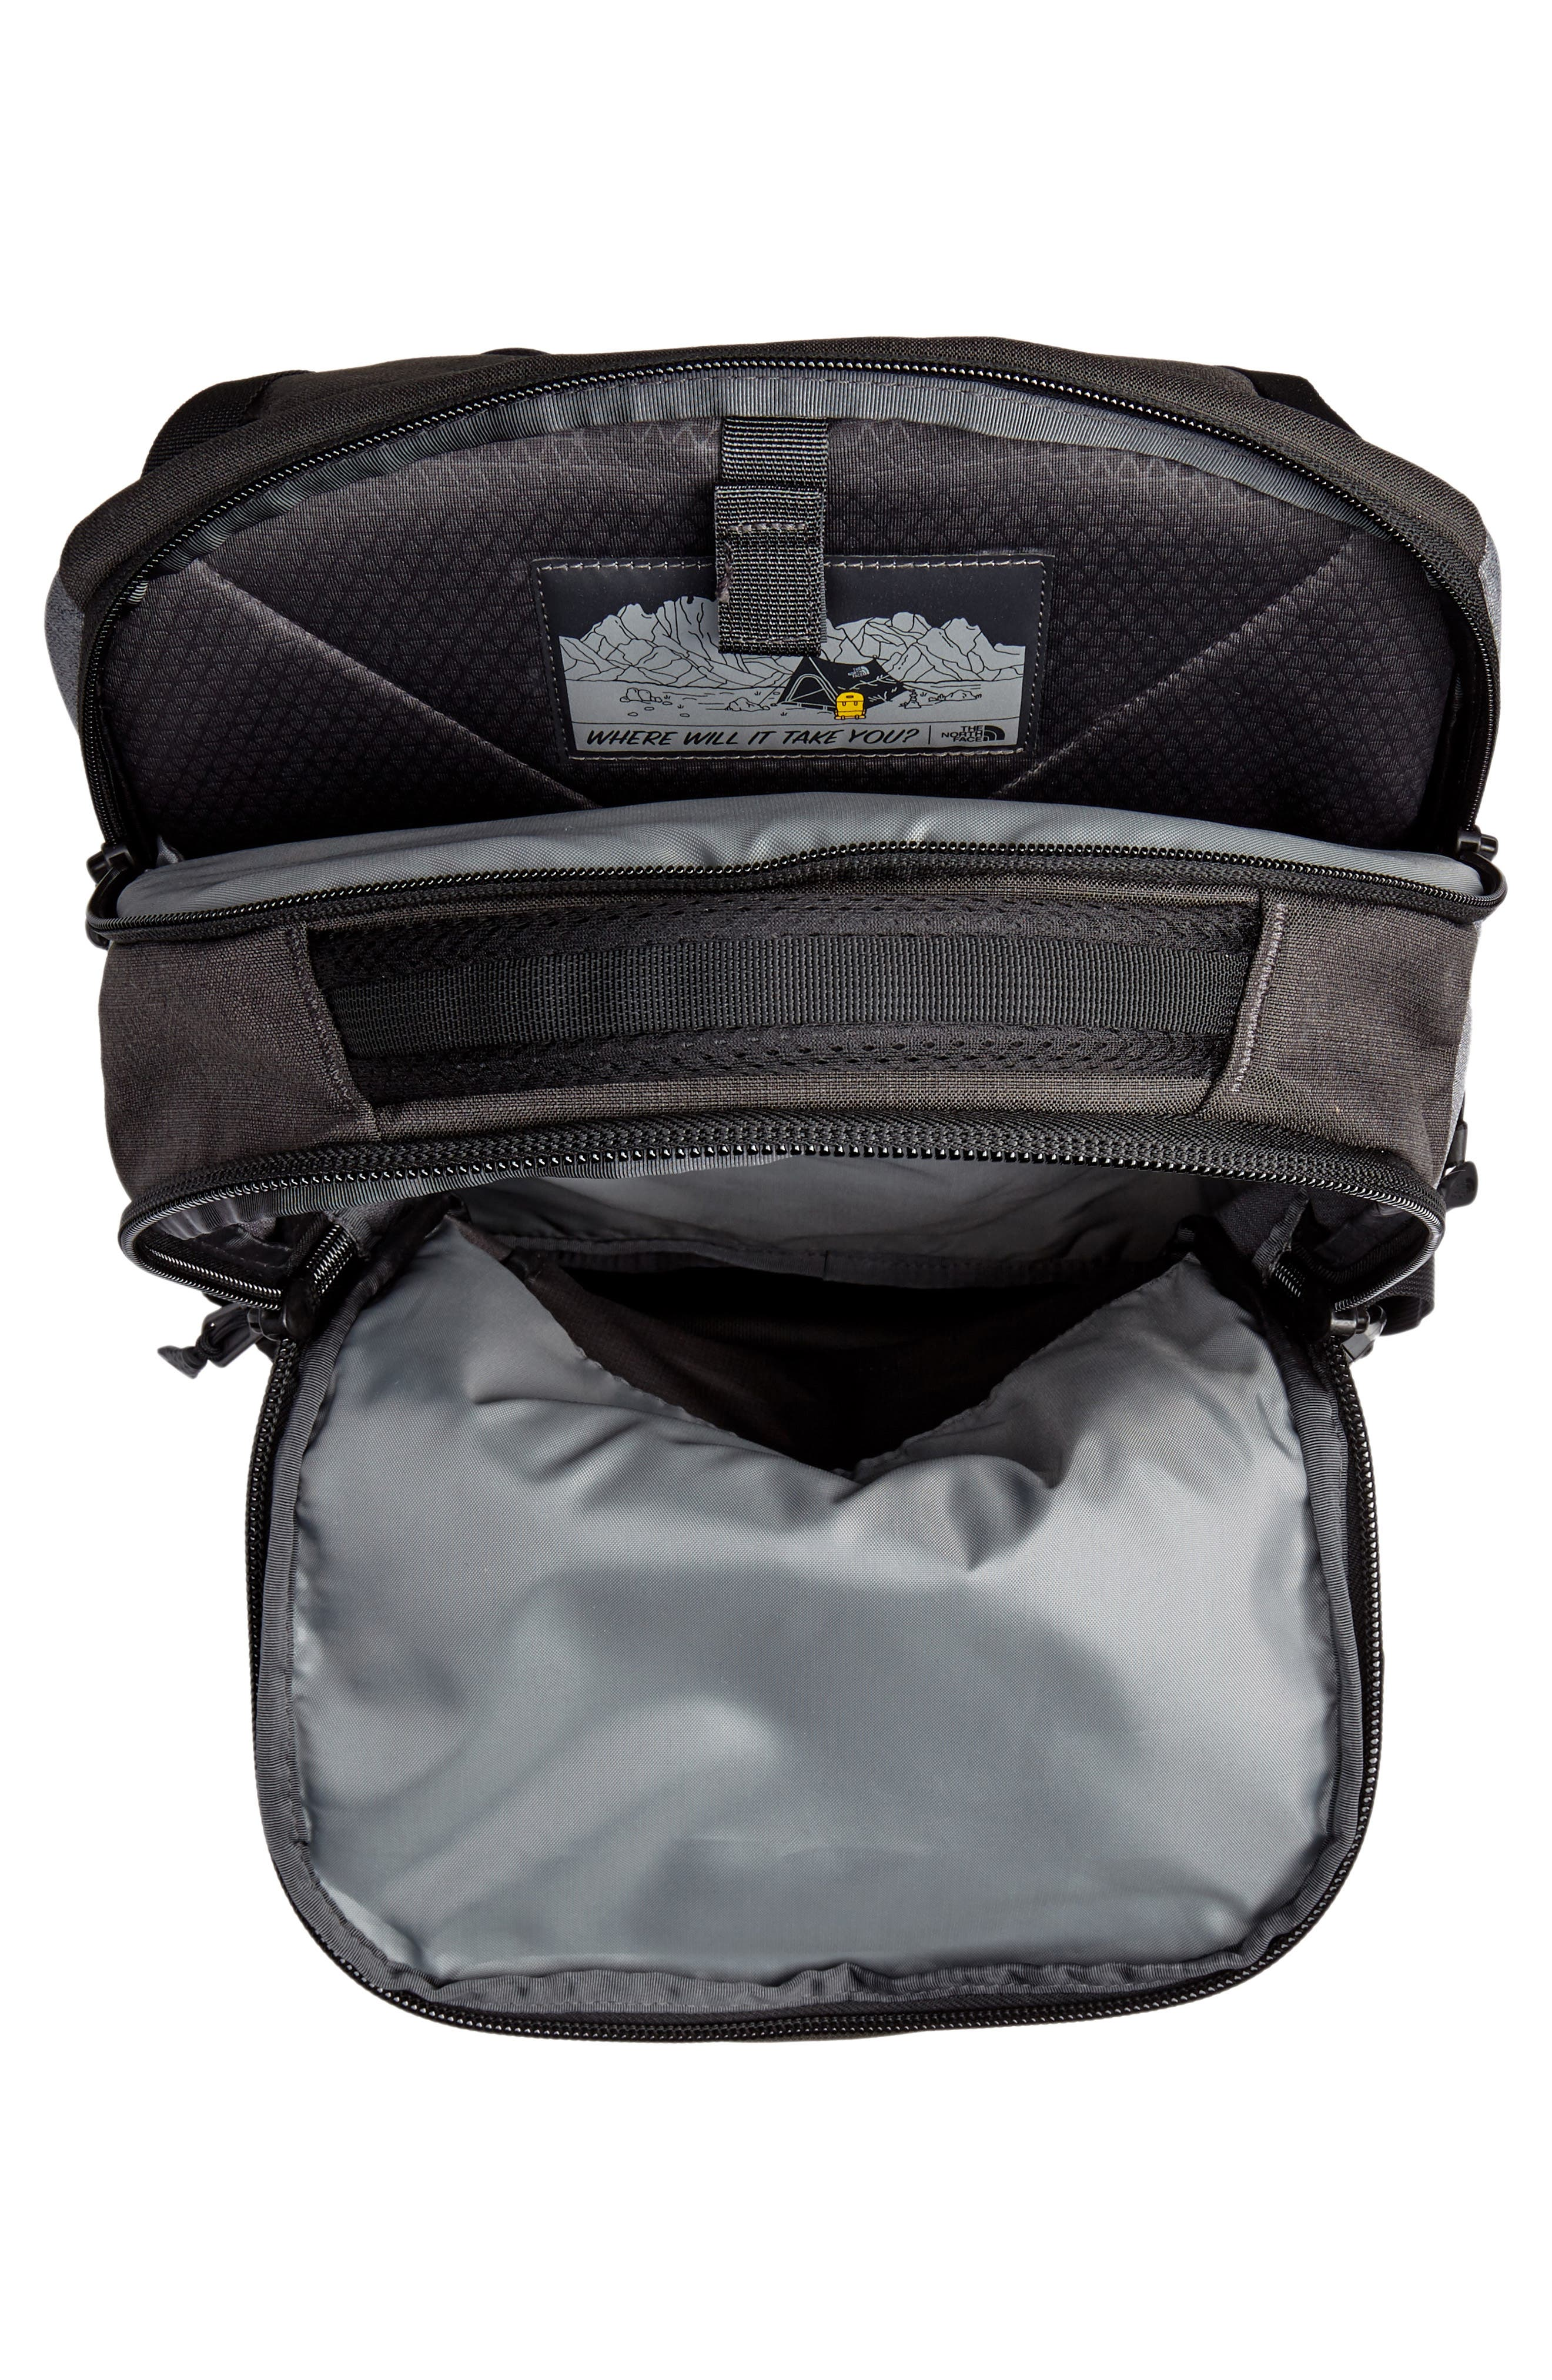 Recon Backpack,                             Alternate thumbnail 4, color,                             DARK GREY HEATHER